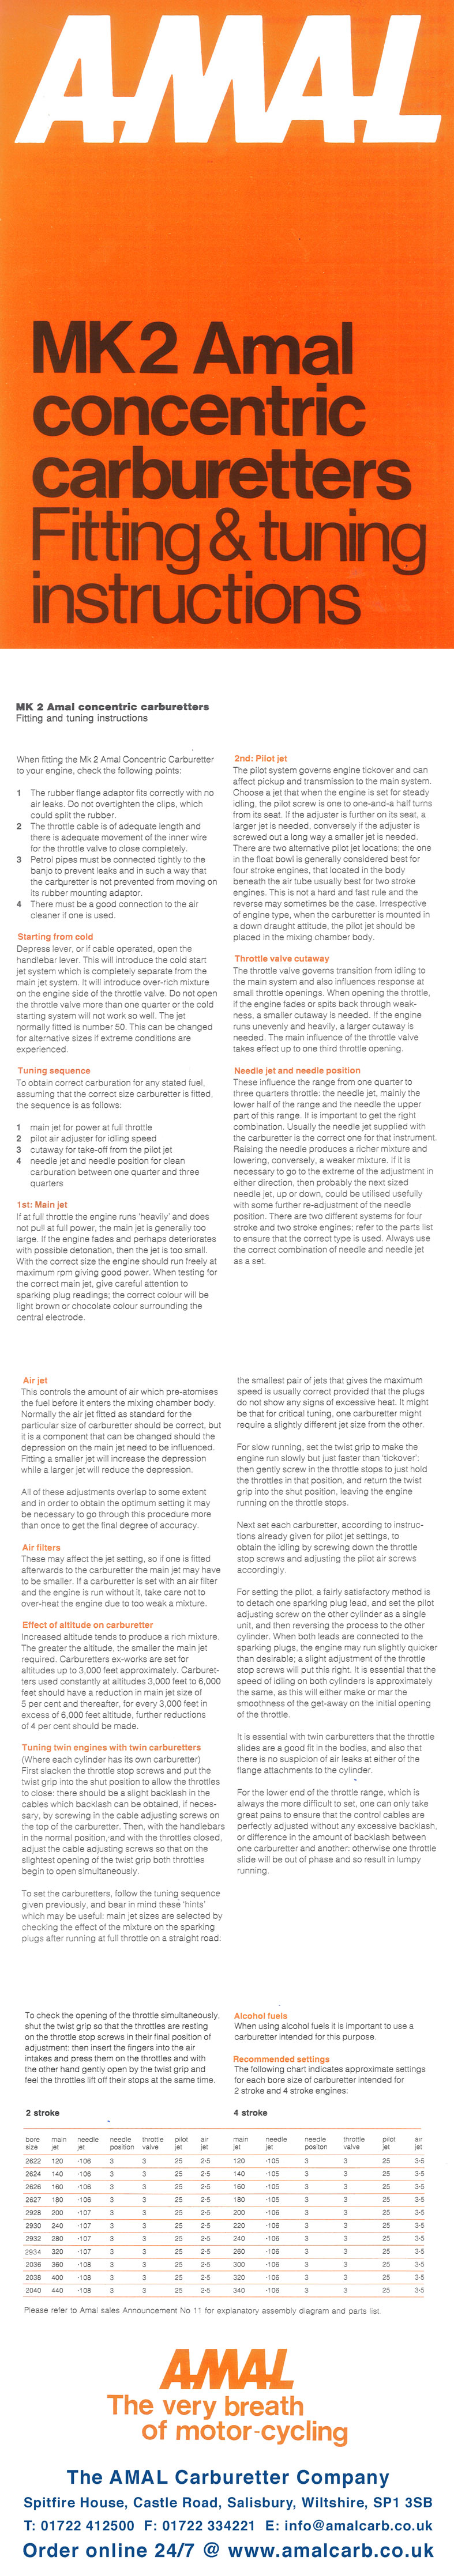 MK2 amal concentric carburetors fitting and tuning instructions.